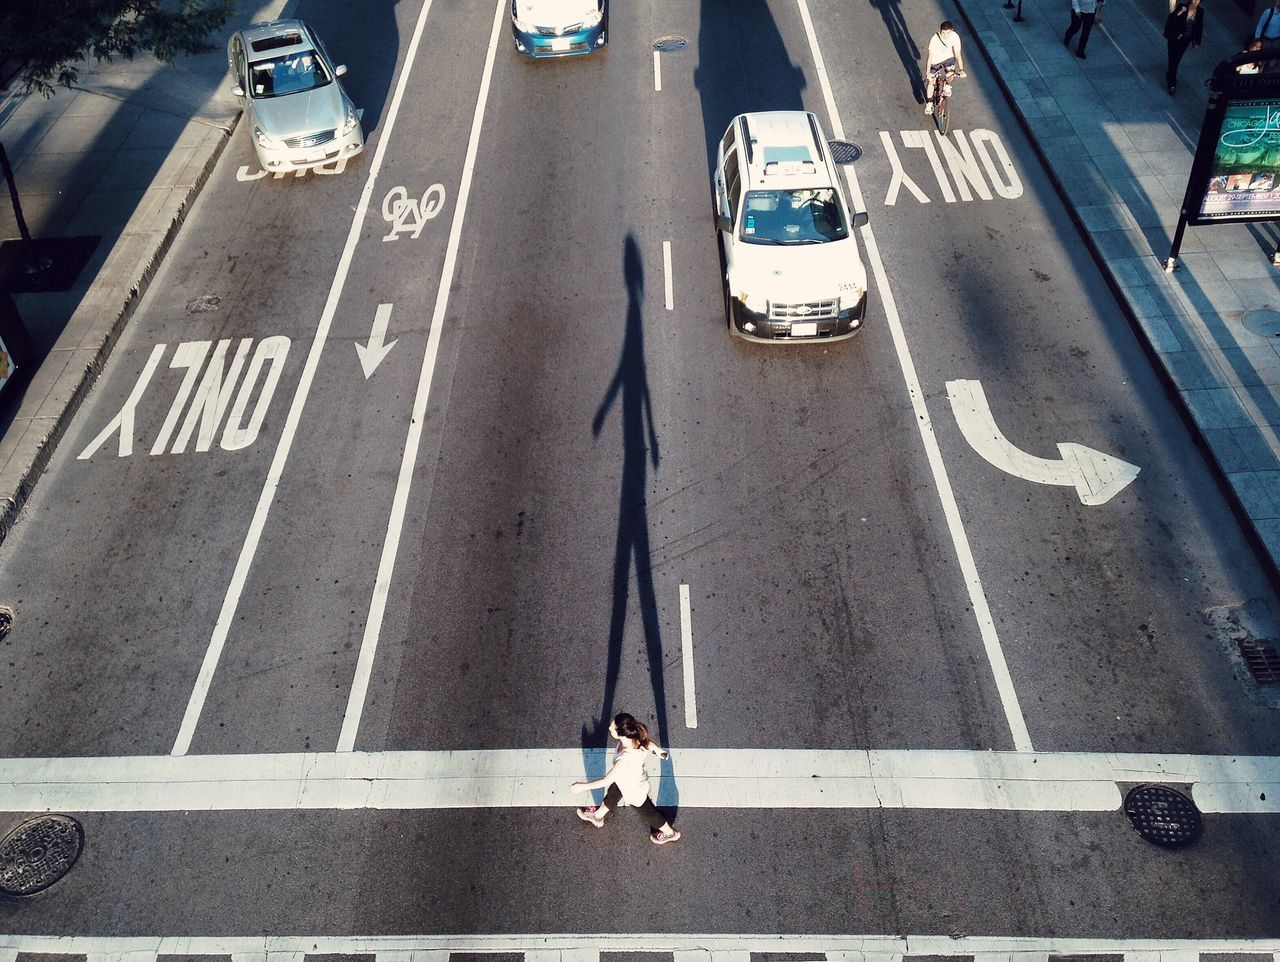 Road Marking Transportation High Angle View Street Road Outdoors One Person Real People Day City Car Women Communication Adults Only People Men Bicycle Lane Adult